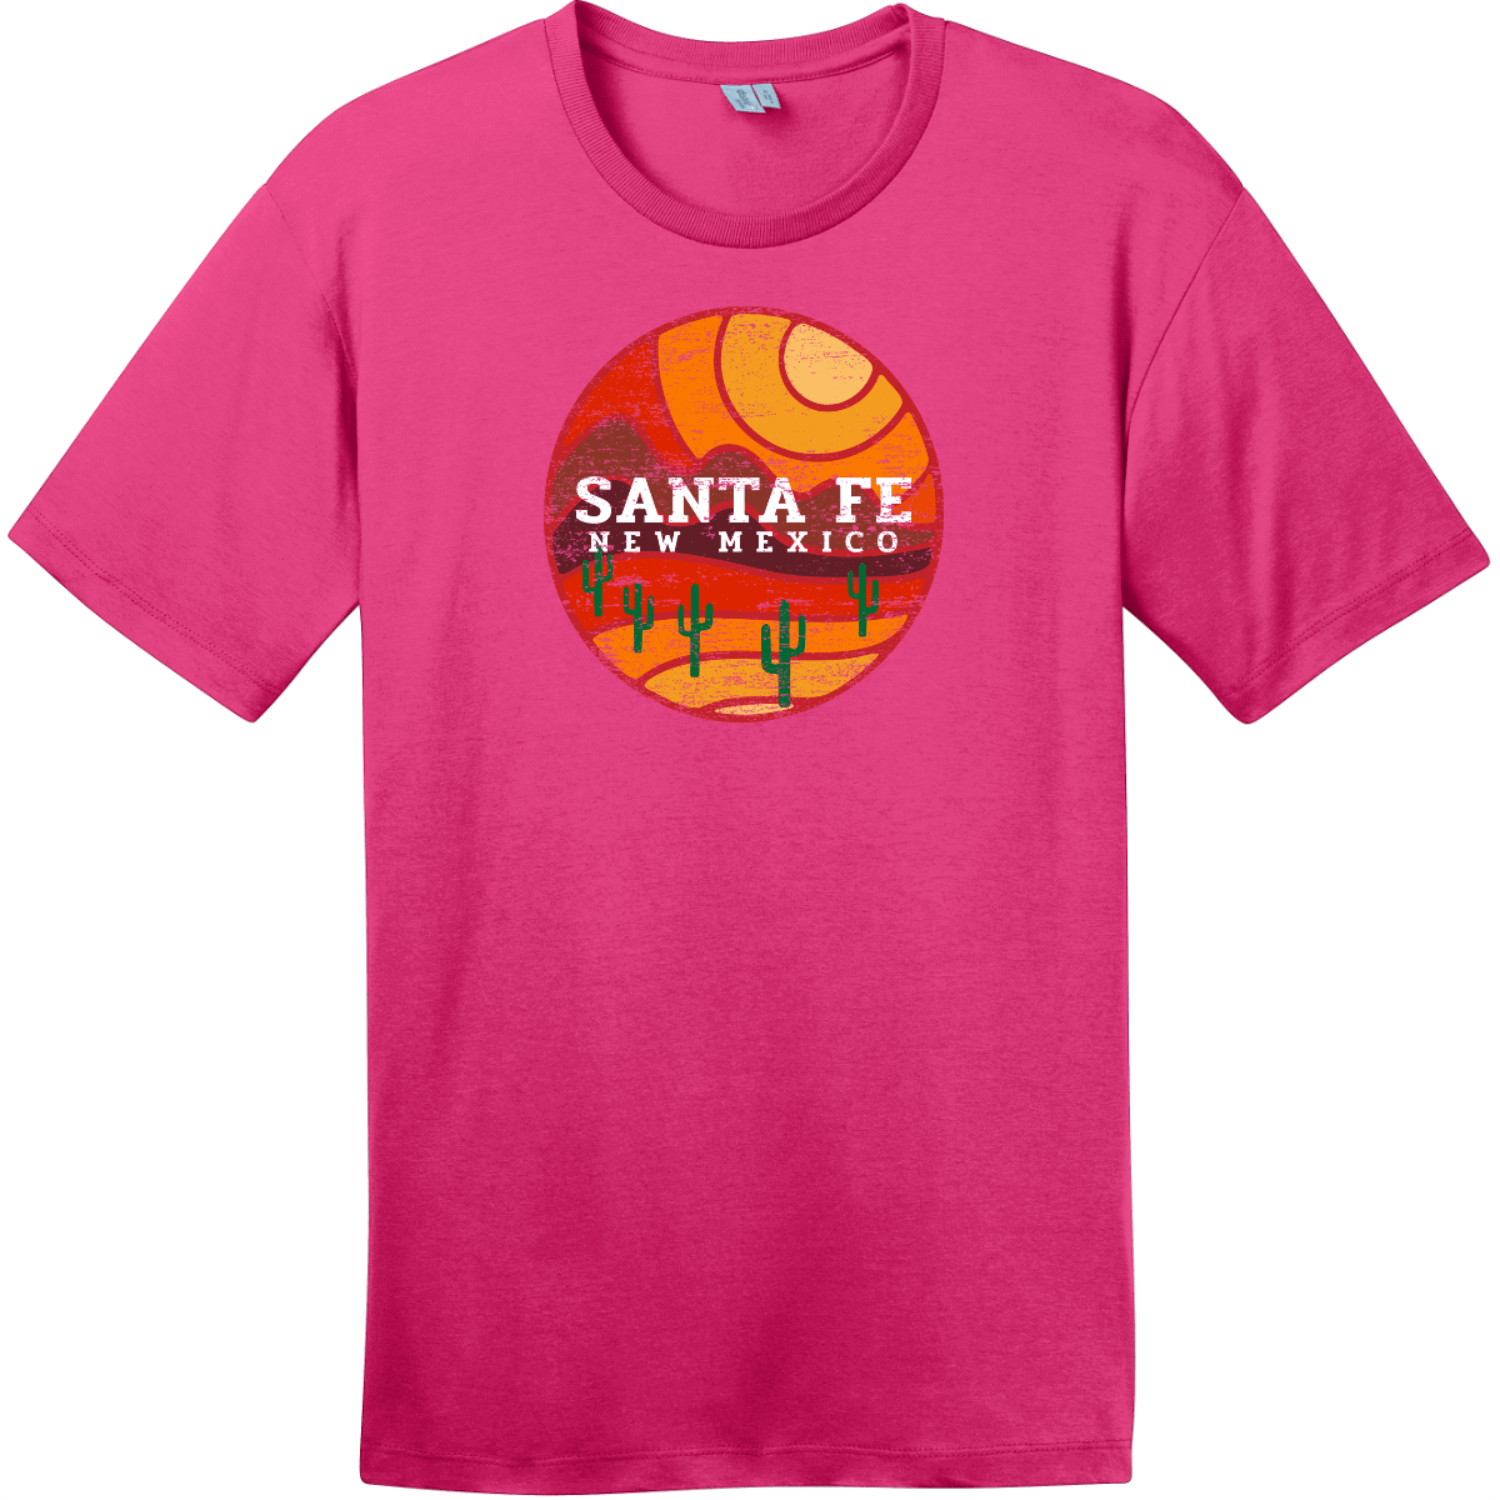 Santa Fe New Mexico Desert To Mountains Vintage T-Shirt Dark Fuchsia District Perfect Weight Tee DT104